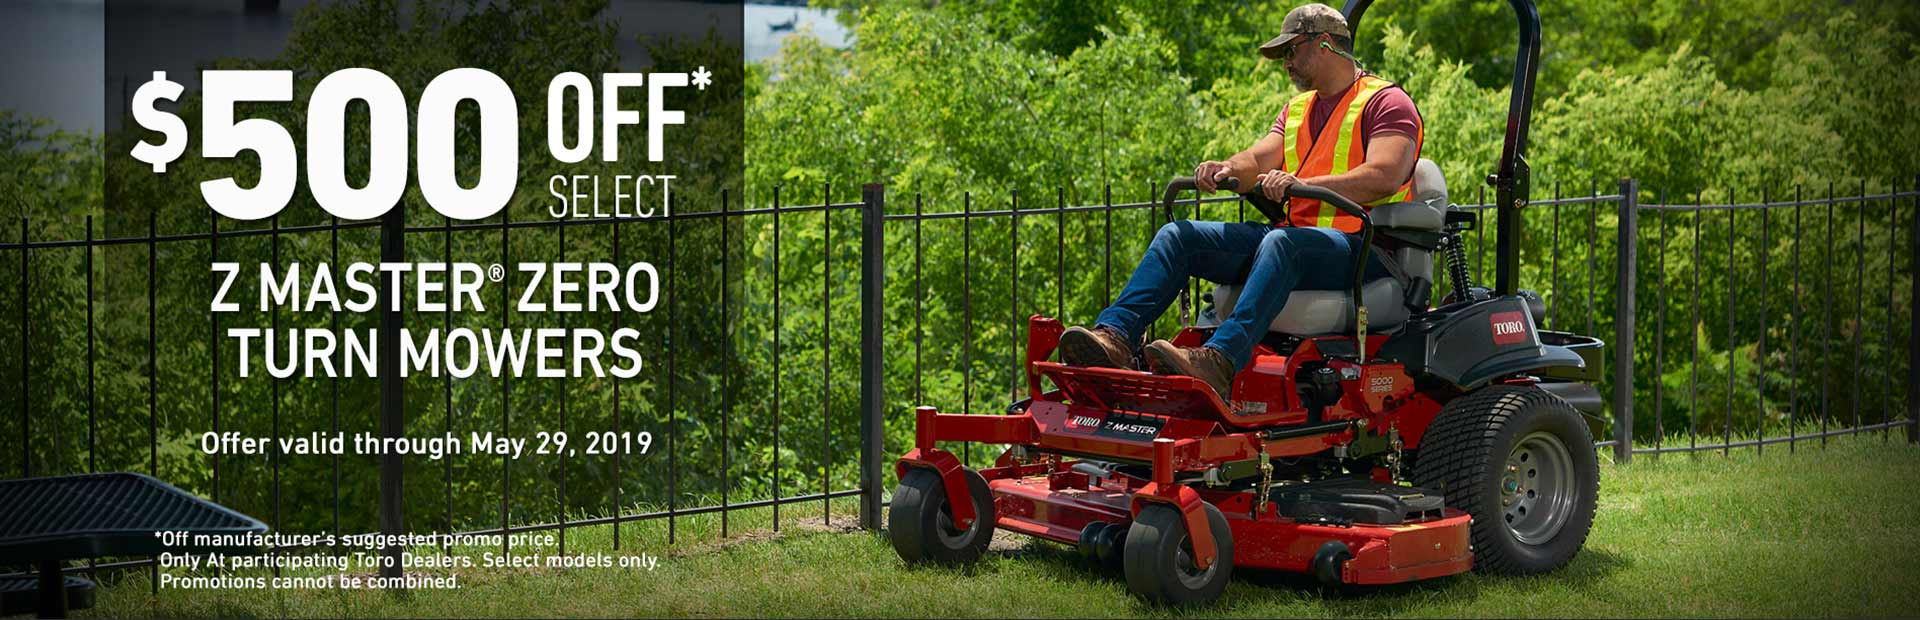 Toro: $500 Off Select ZMaster7000 Mowers